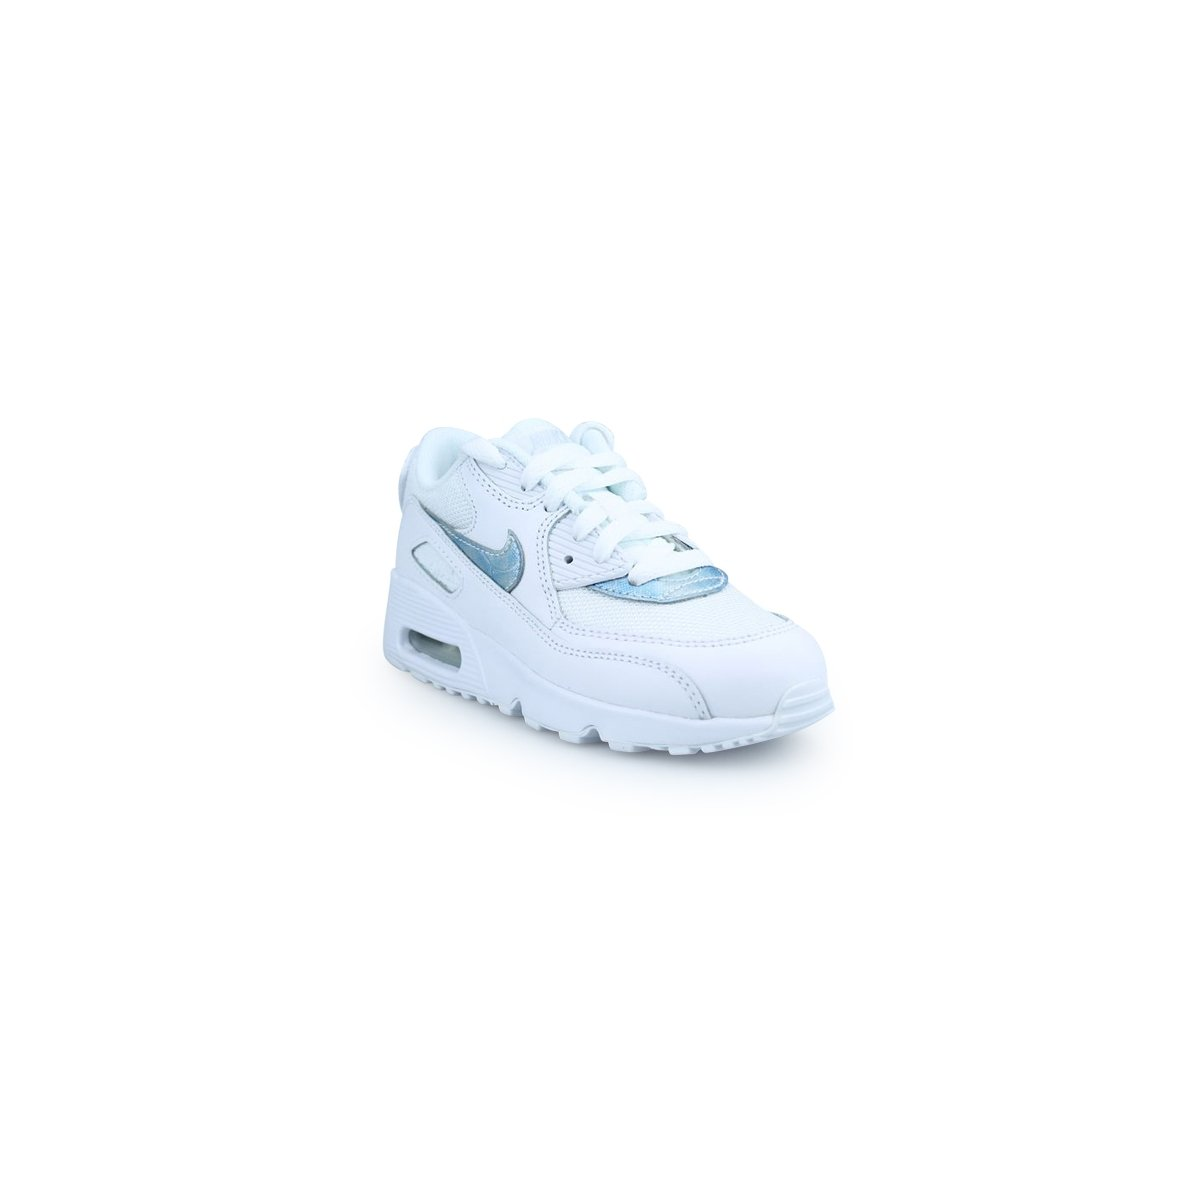 separation shoes 309ff 10849 Nike Air Max 90 Mesh PS Bambino/a 833420 111: Amazon.it: Scarpe e borse